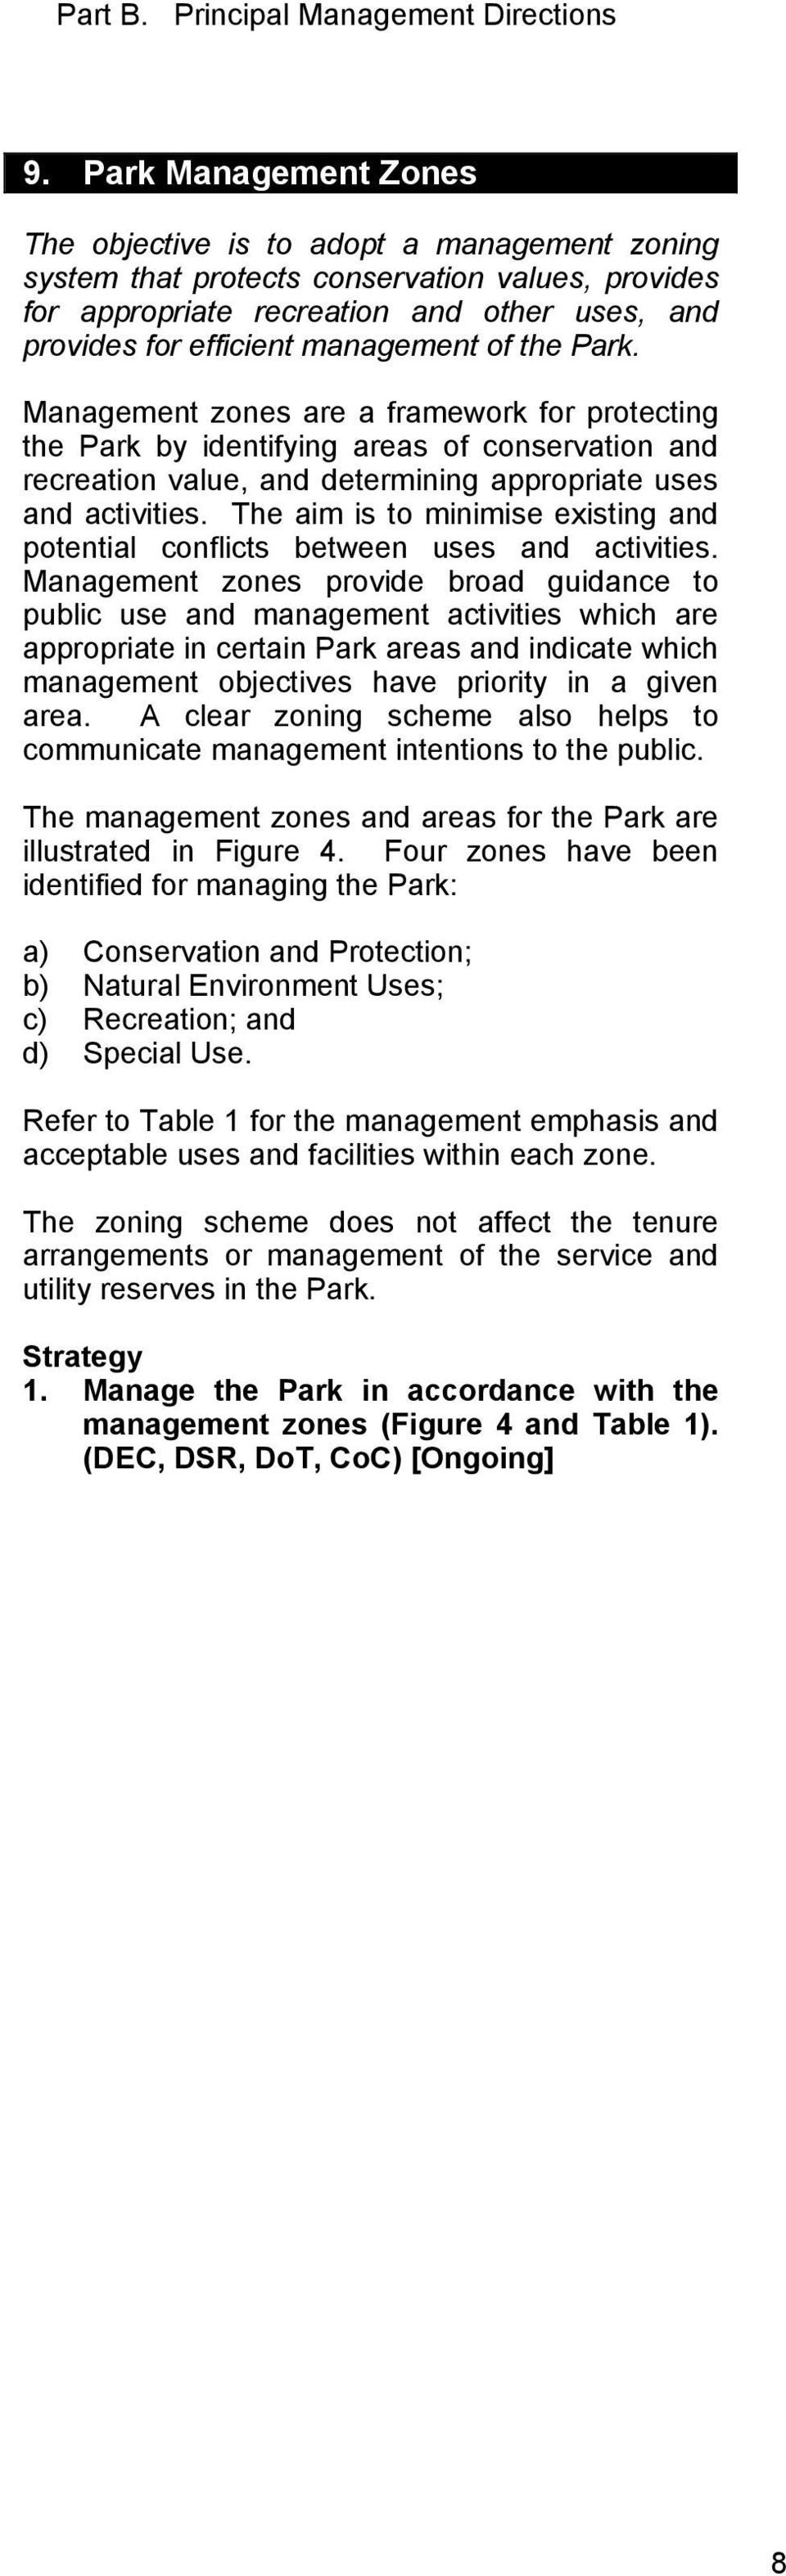 of the Park. Management zones are a framework for protecting the Park by identifying areas of conservation and recreation value, and determining appropriate uses and activities.